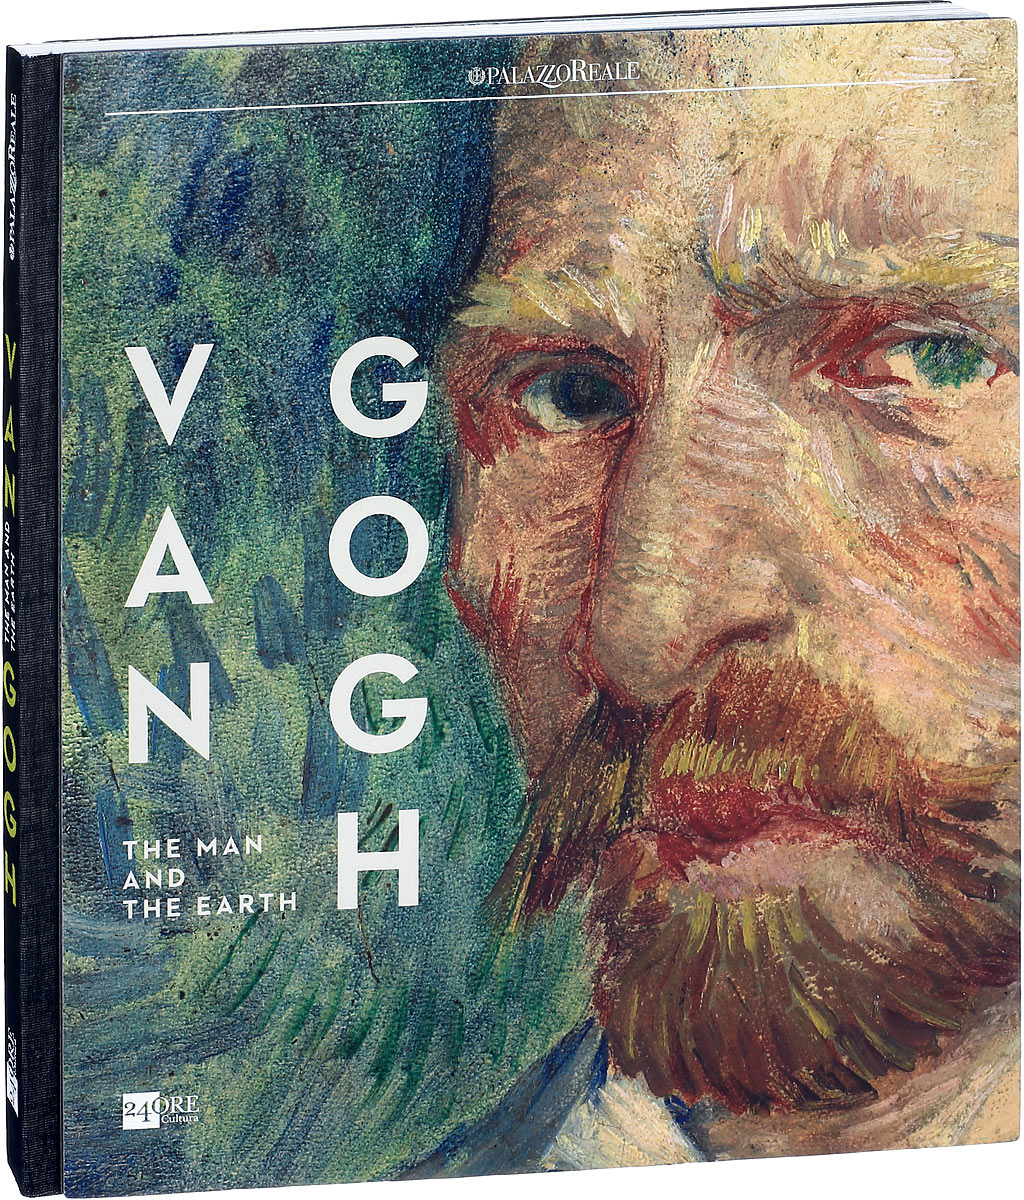 Van Gogh: The Man and the Earth the inhuman